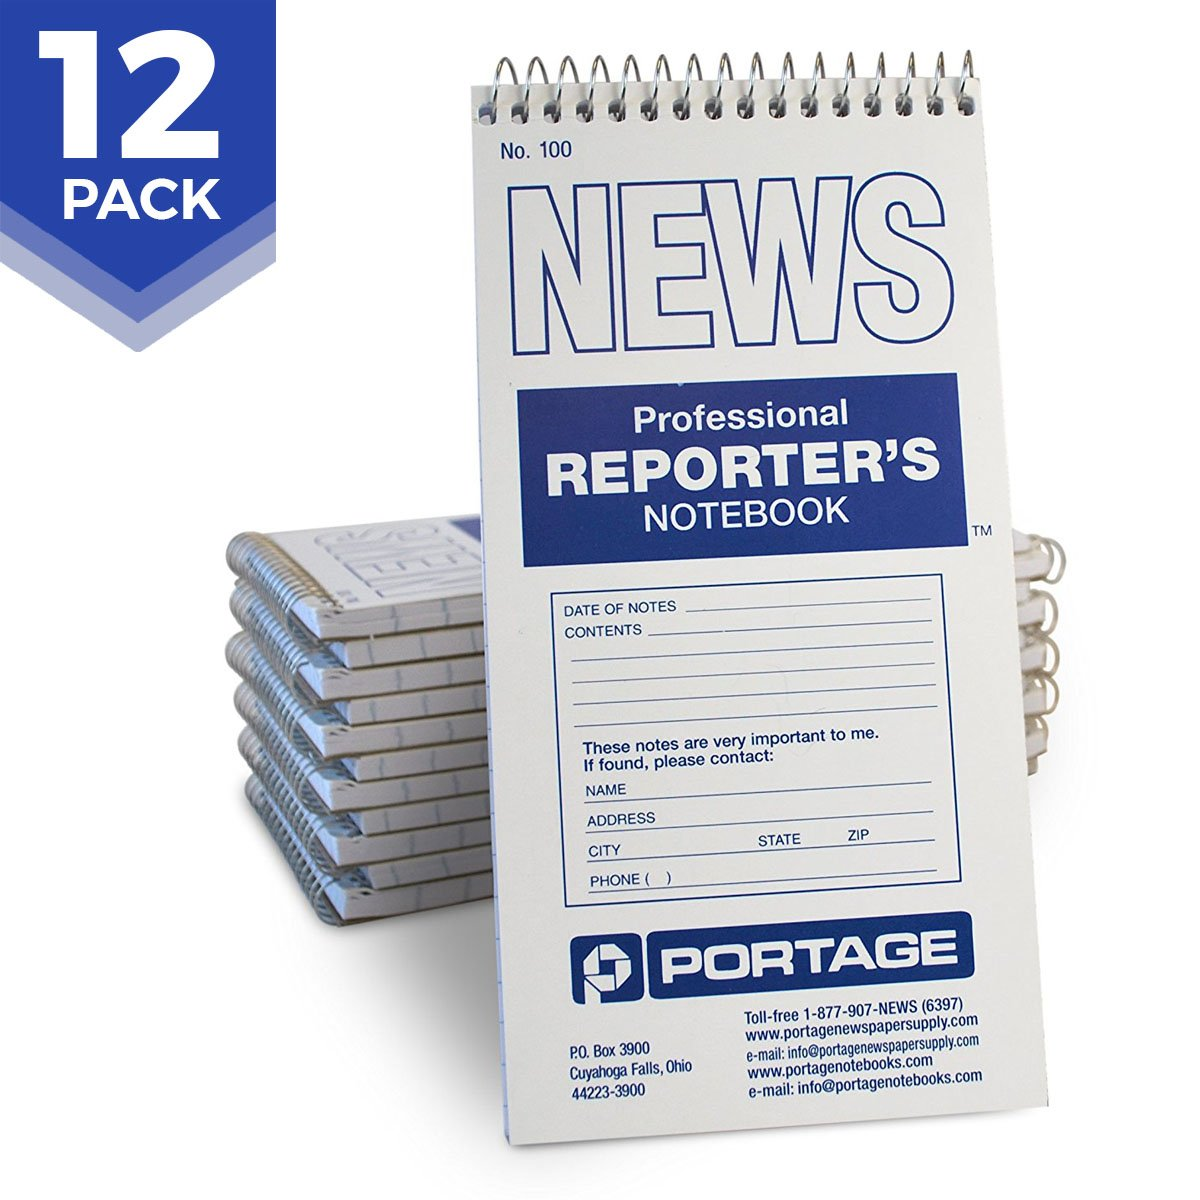 Reporter's Notebook, 100 Pitman Ruled, 70 Sheets, 4x8, 12 Pack by Portage